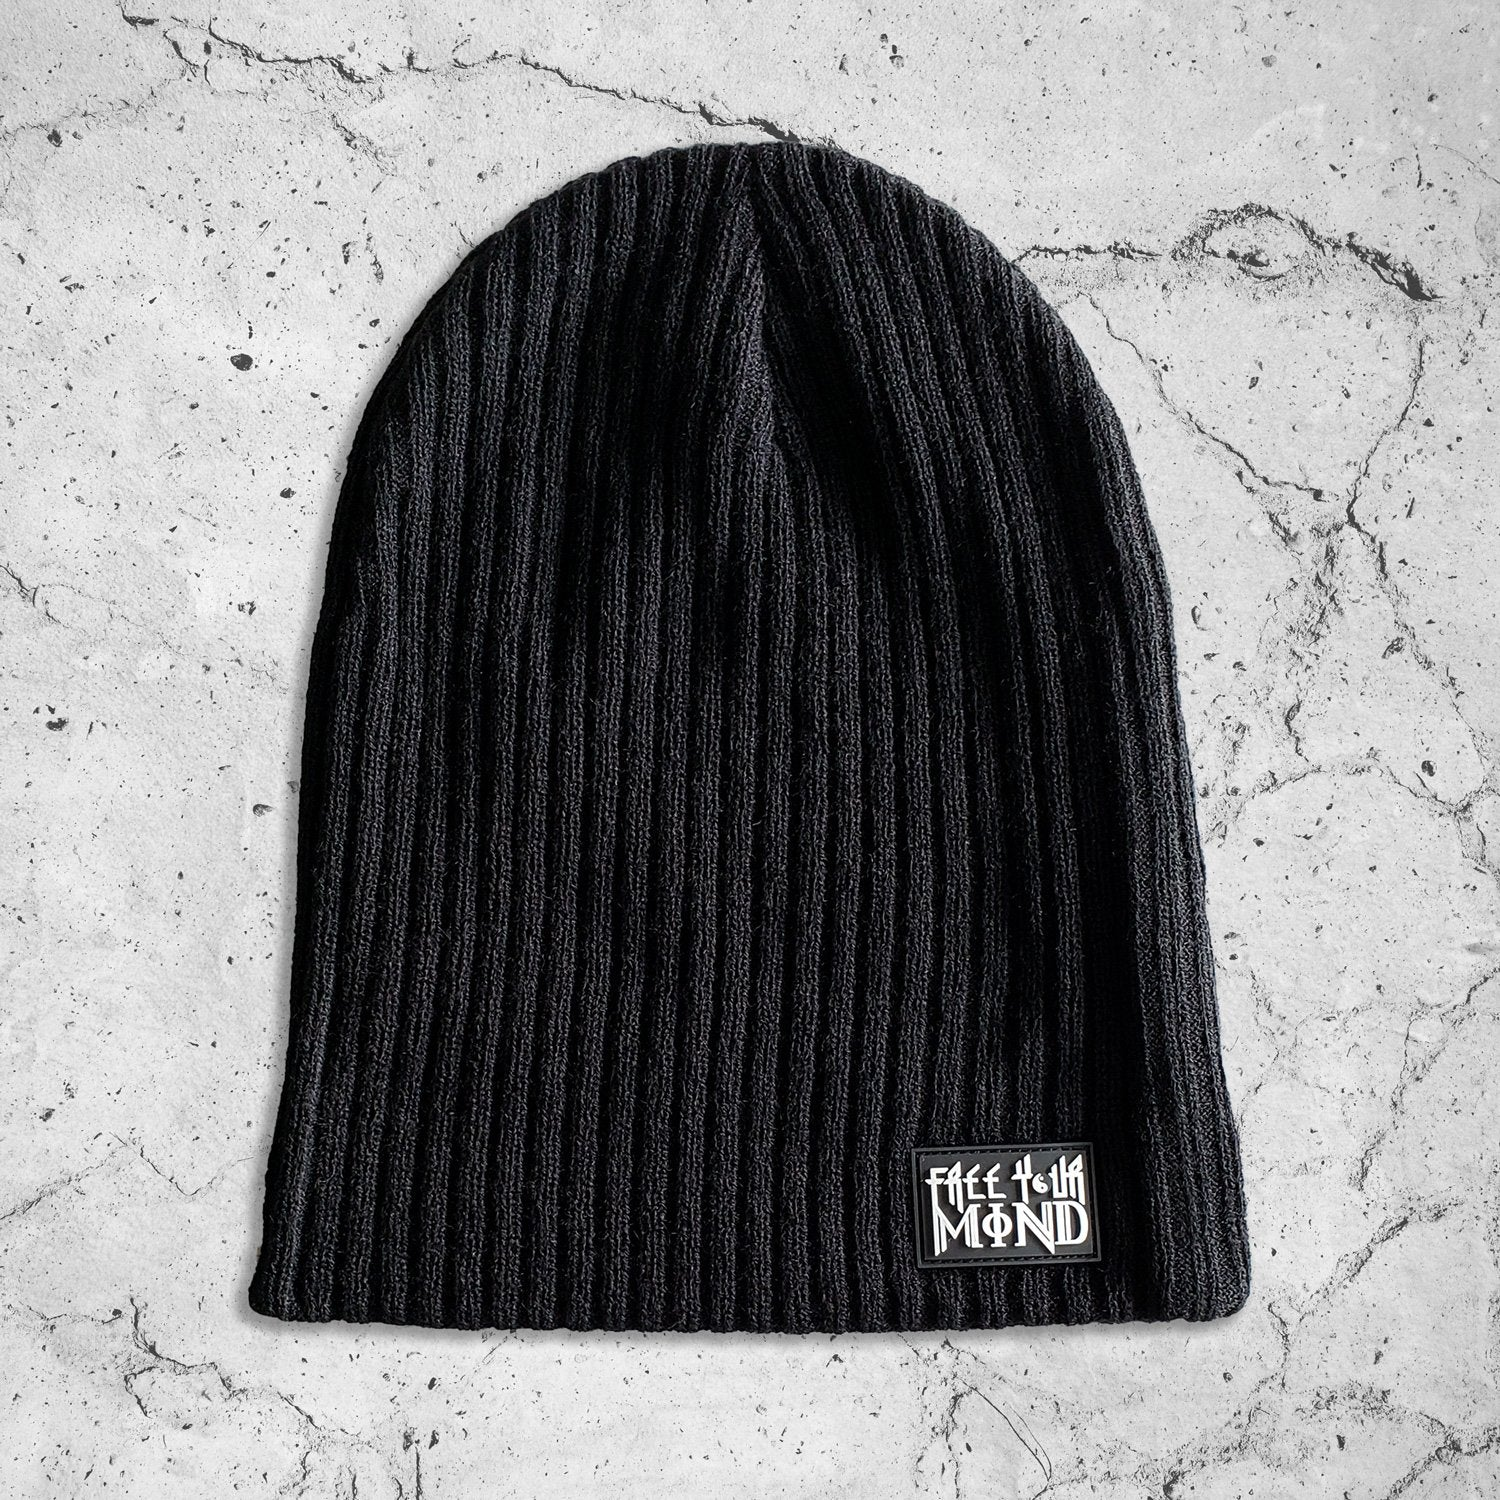 FREE YOUR MIND // Slouch Beanie w/ Rubber Molded Patch \\